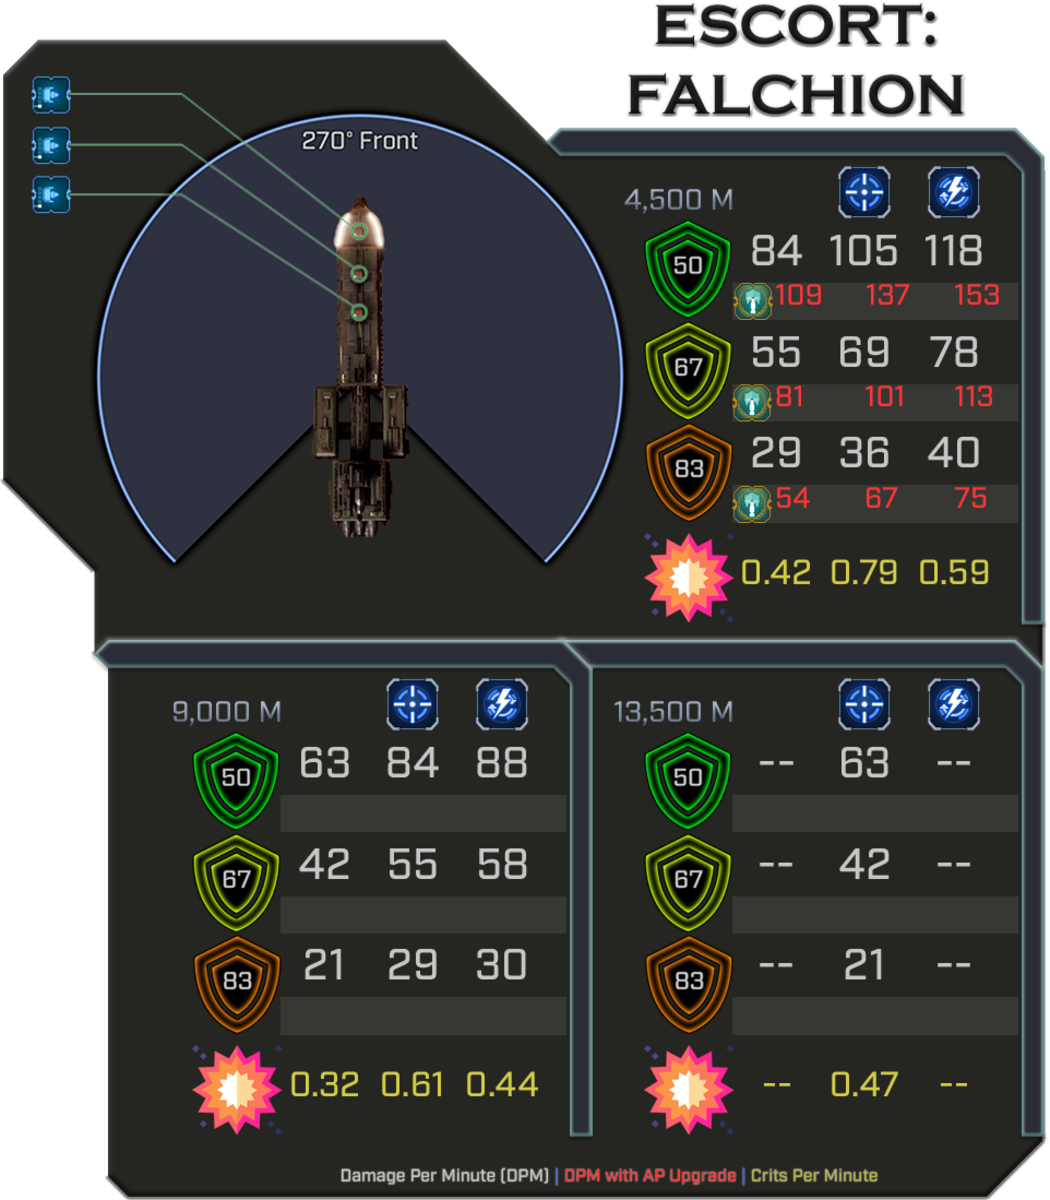 Falchion - Weapon Damage Profile (Does not count special weapons)